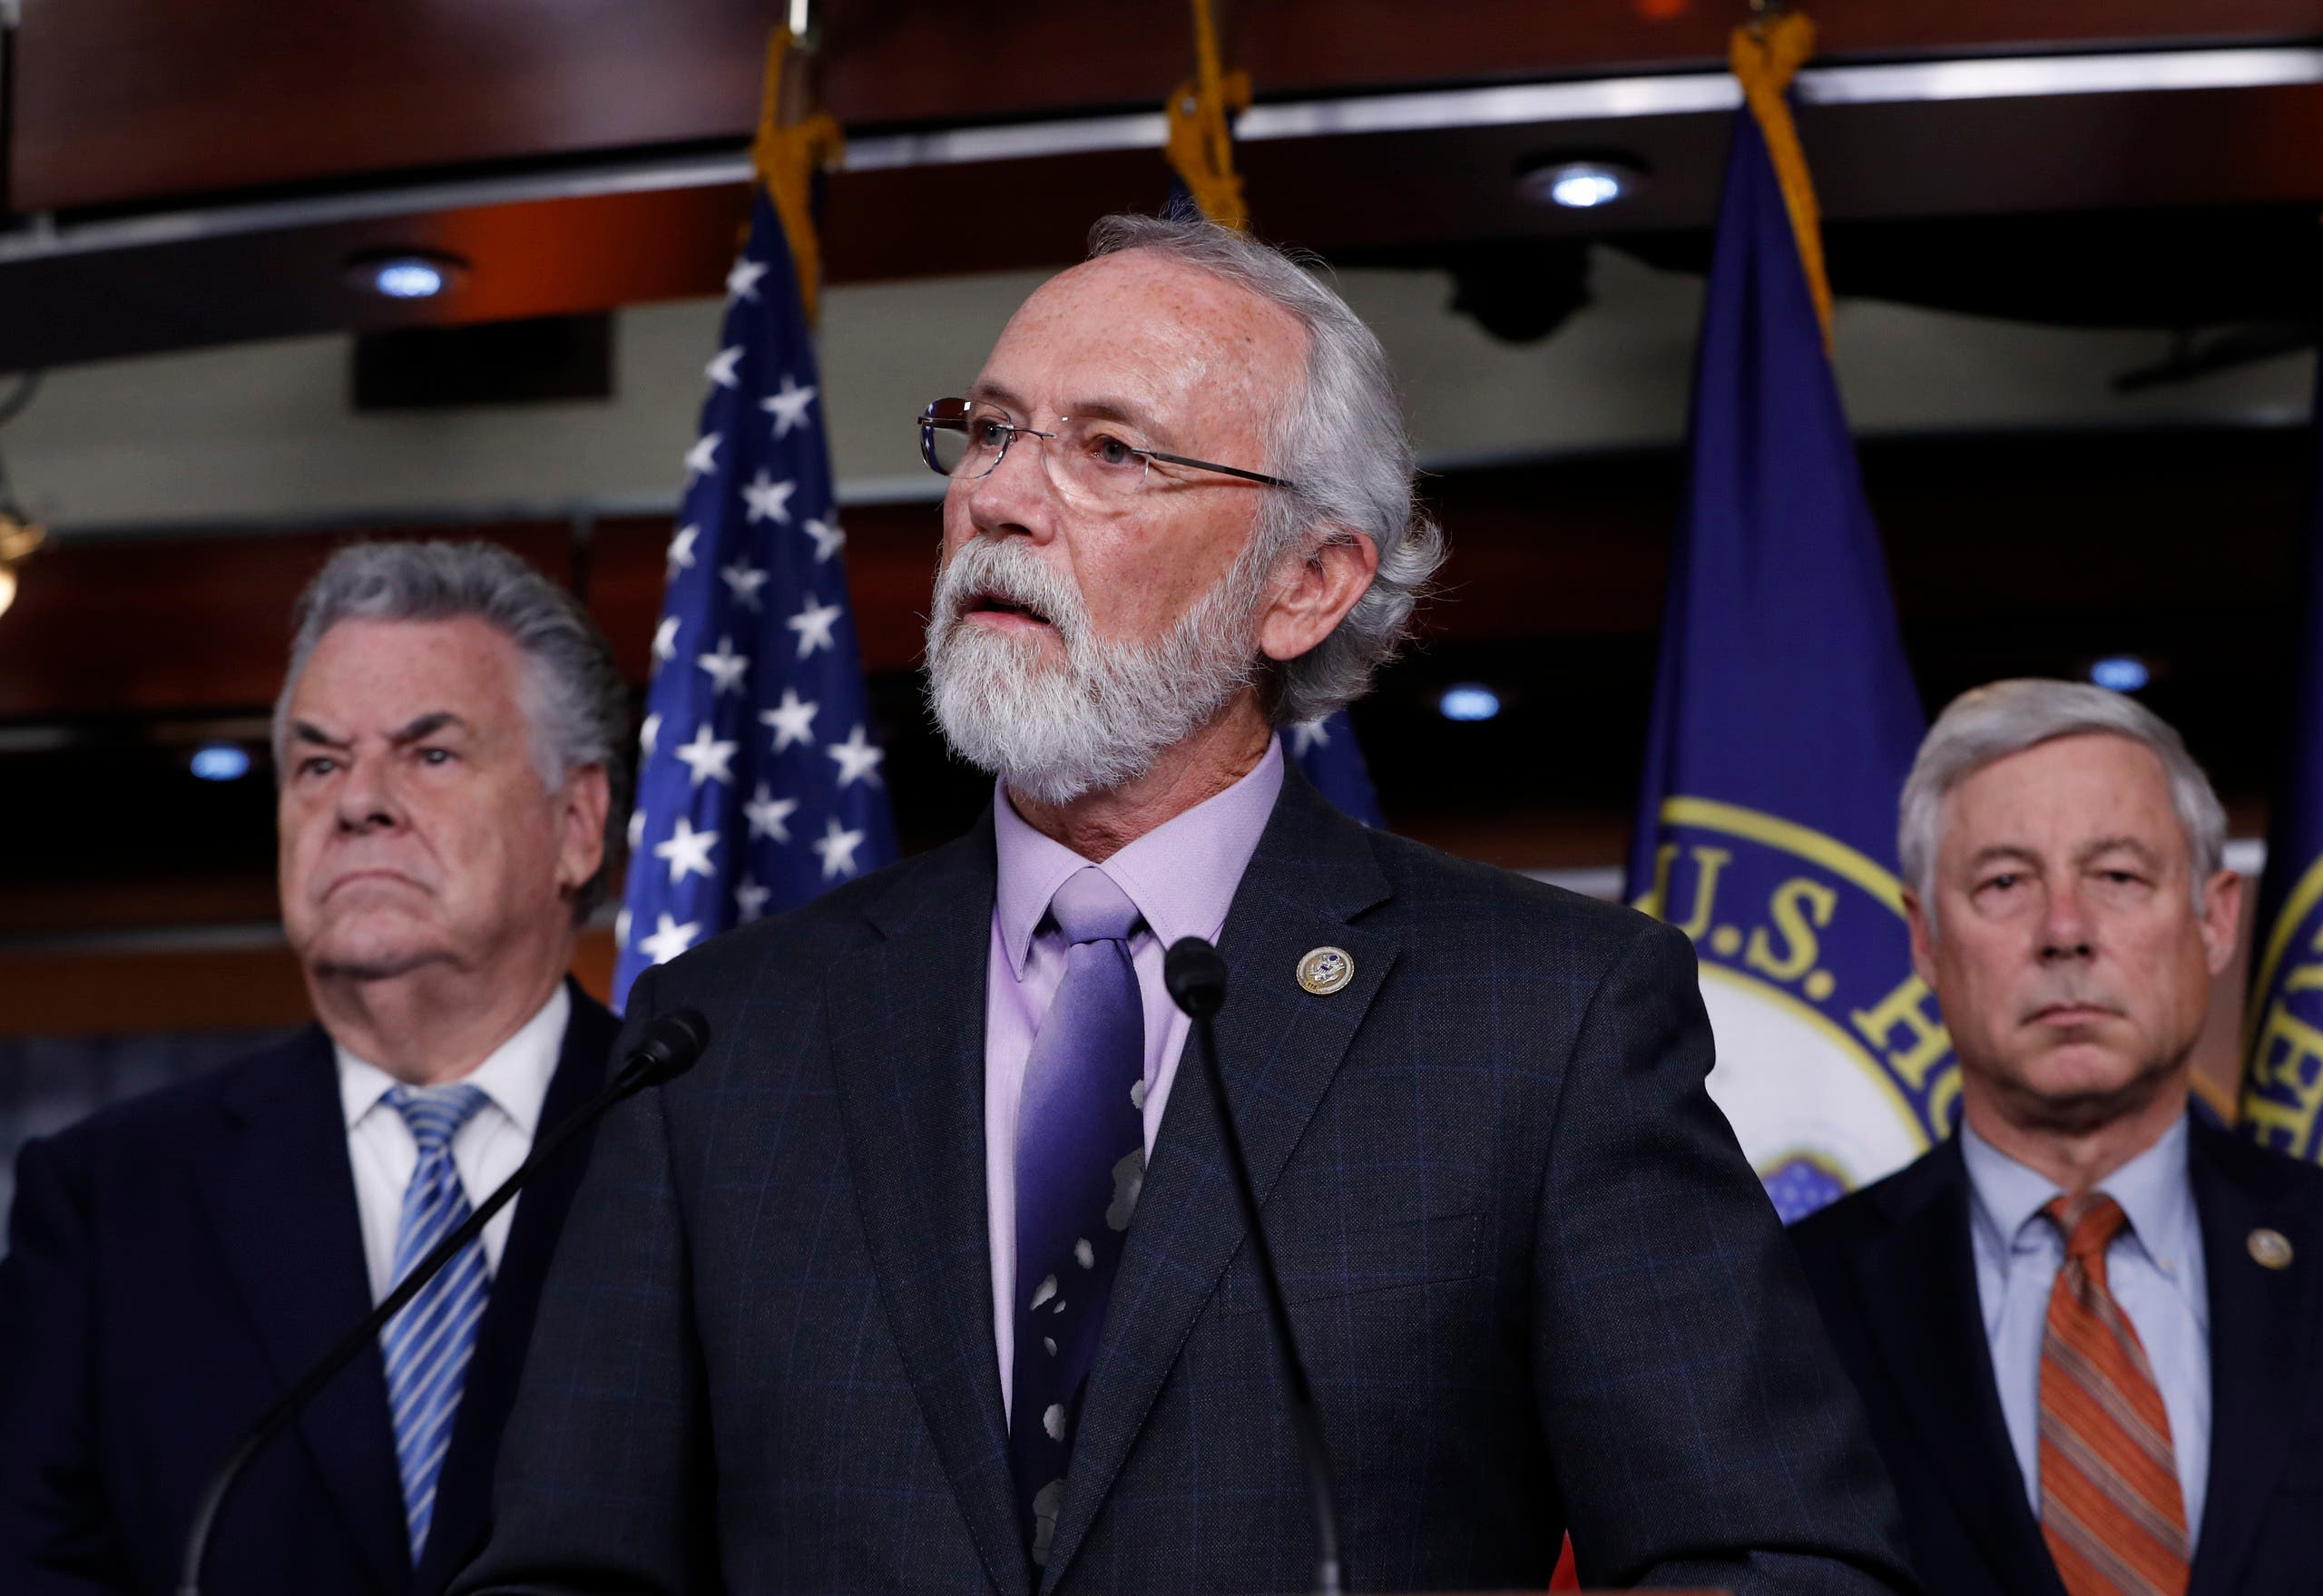 Rep. Dan Newhouse, R-Wash., center, flanked by Rep. Peter King, R-N.Y., left, and Rep. Fred Upton, R-Mich., at a news conference on Capitol Hill. (AP)